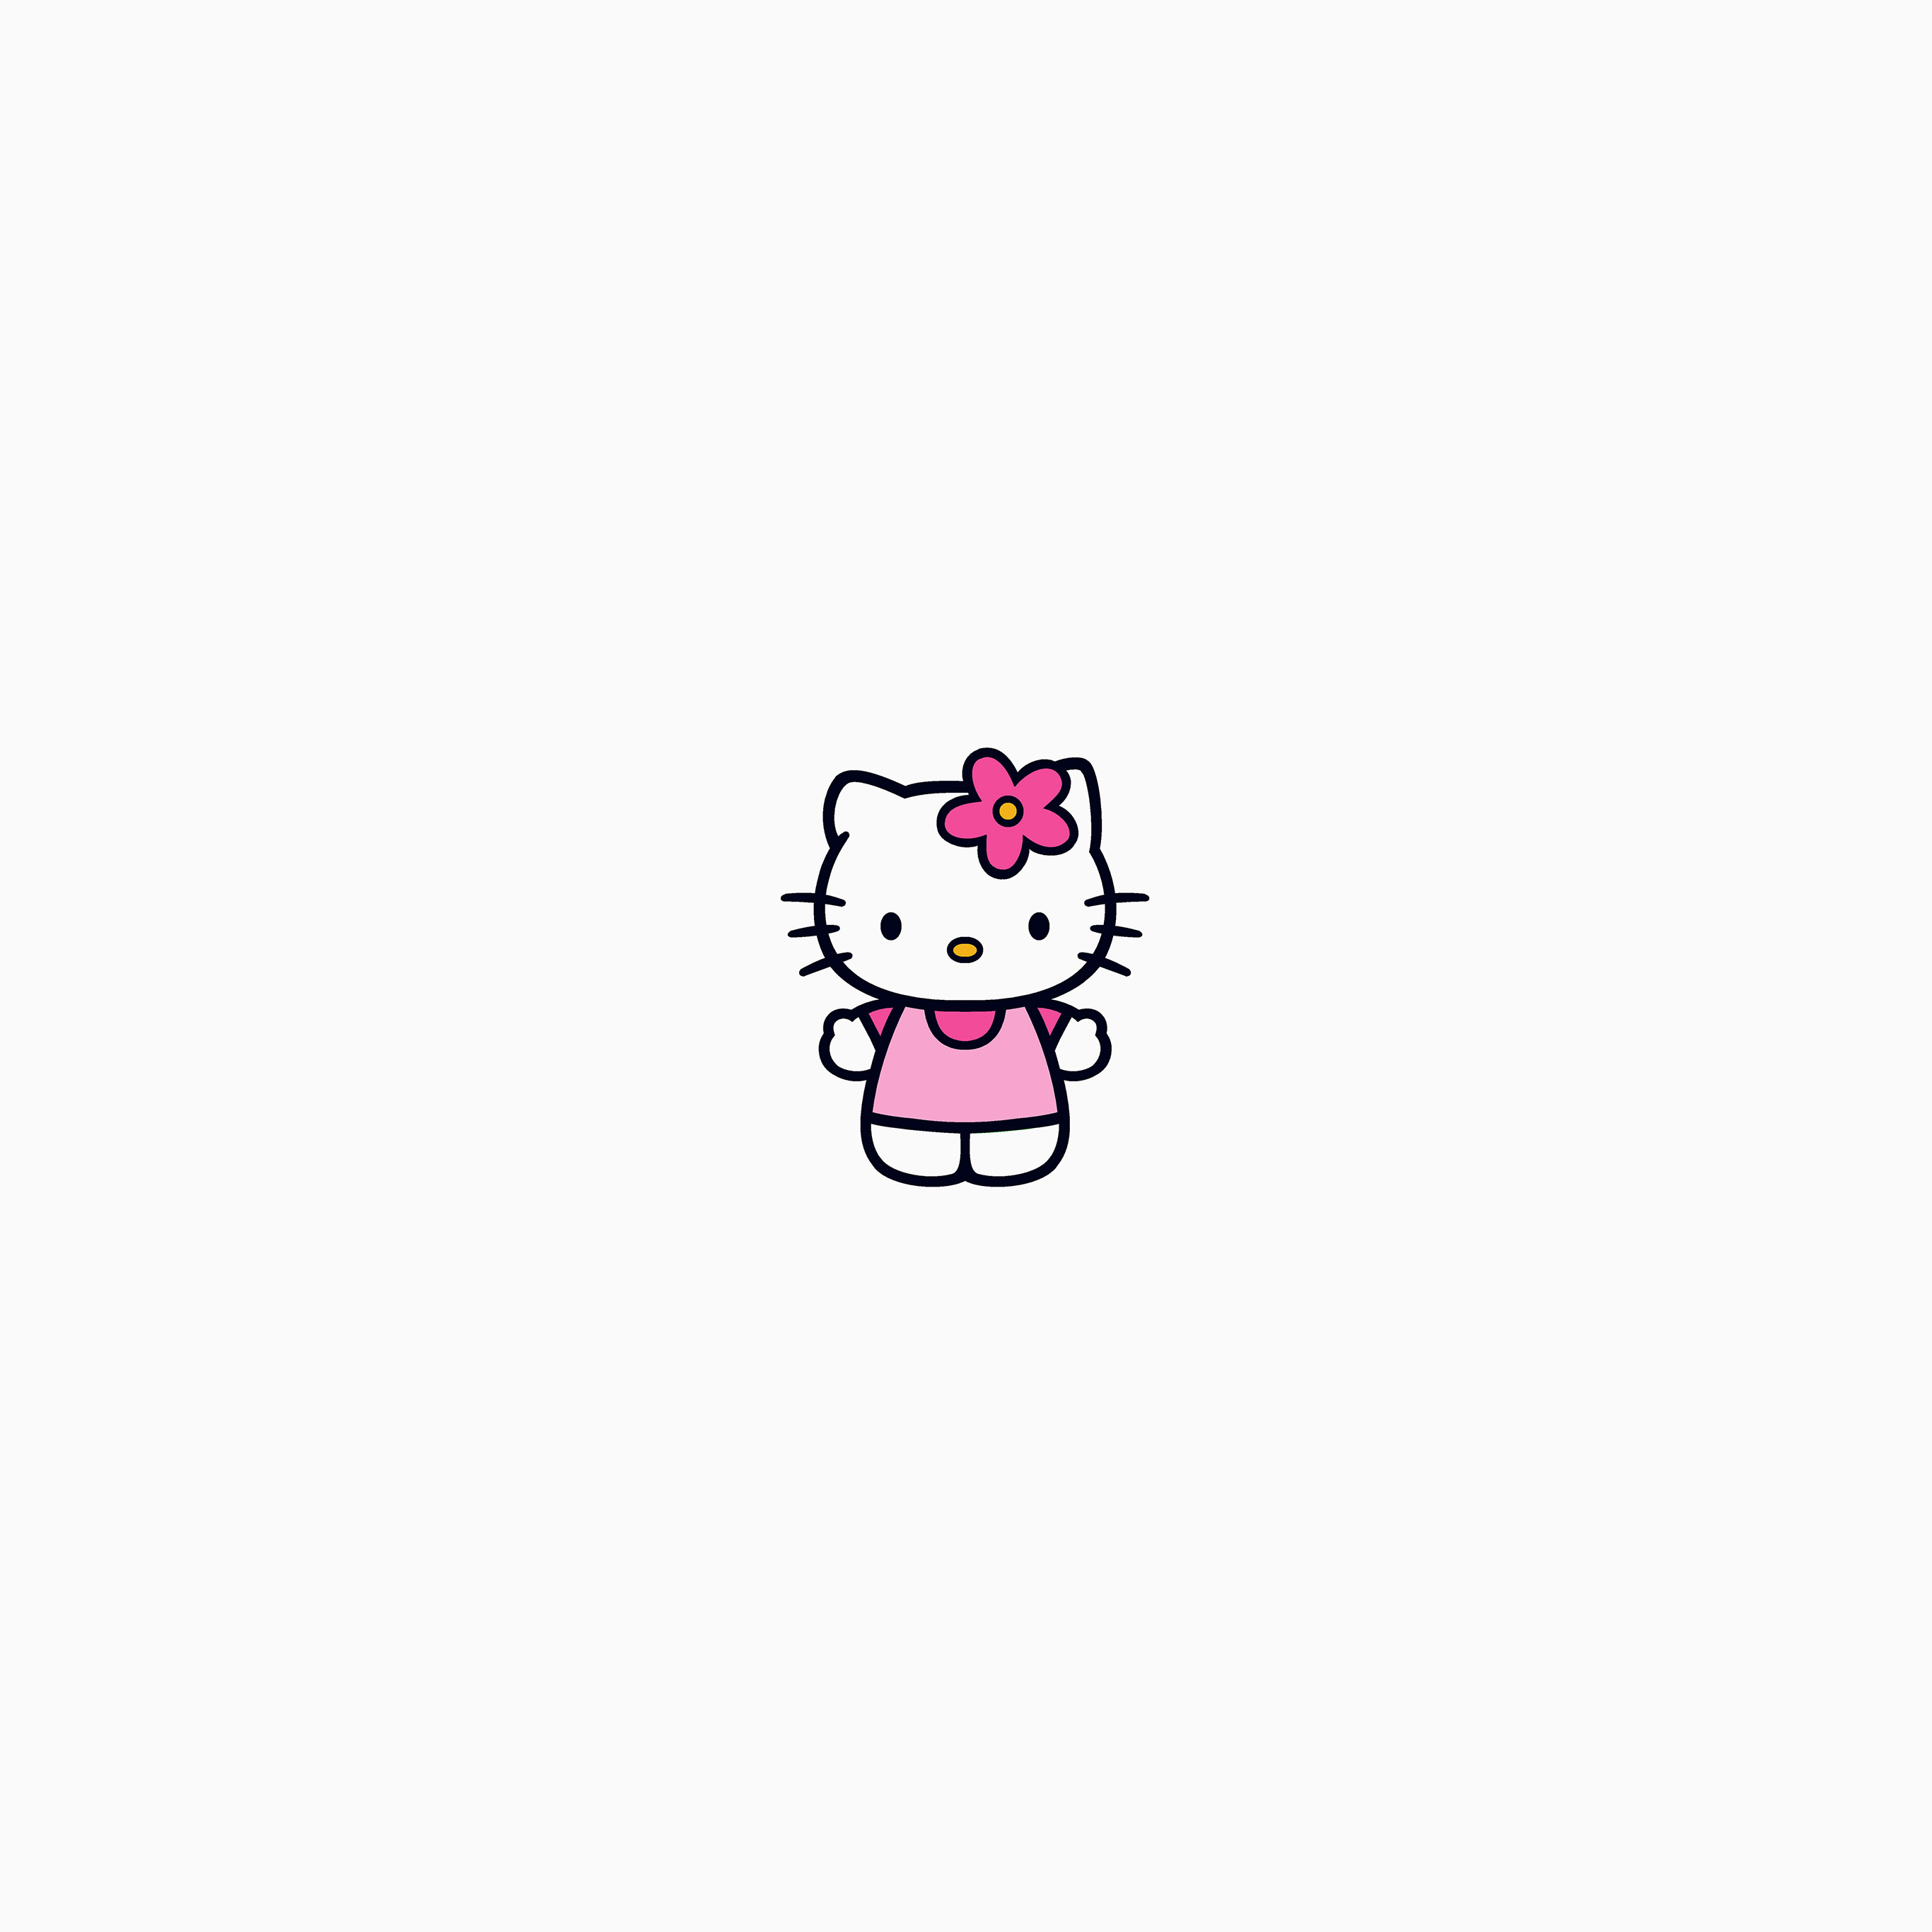 Ar87 Hello Kitty Logo Cute Art Illustration Wallpaper